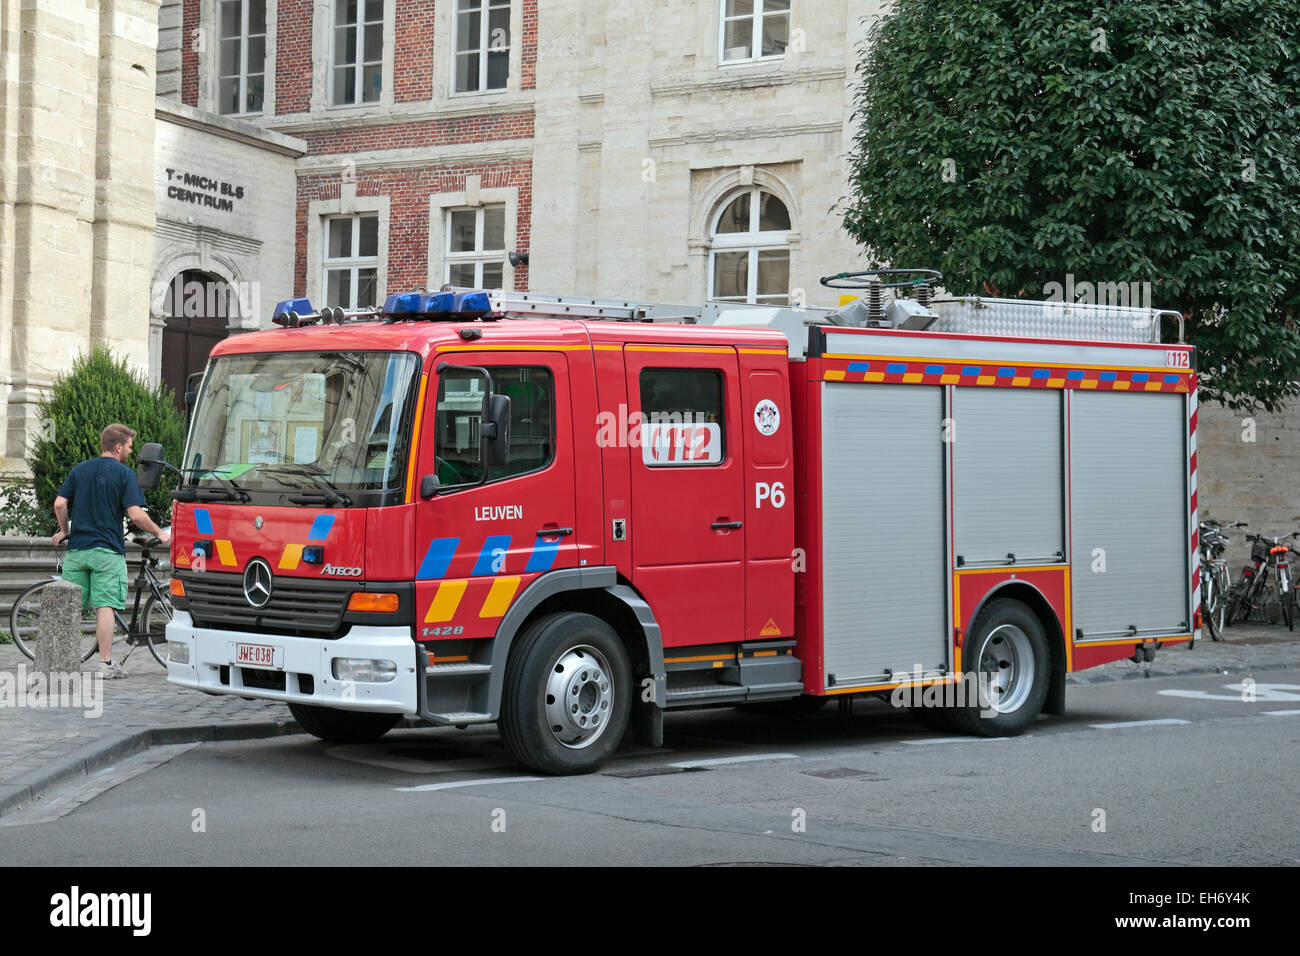 A Mercedes Benz Atego Fire Appliance In Leuven, Flemish Brabant, Belgium.    Stock